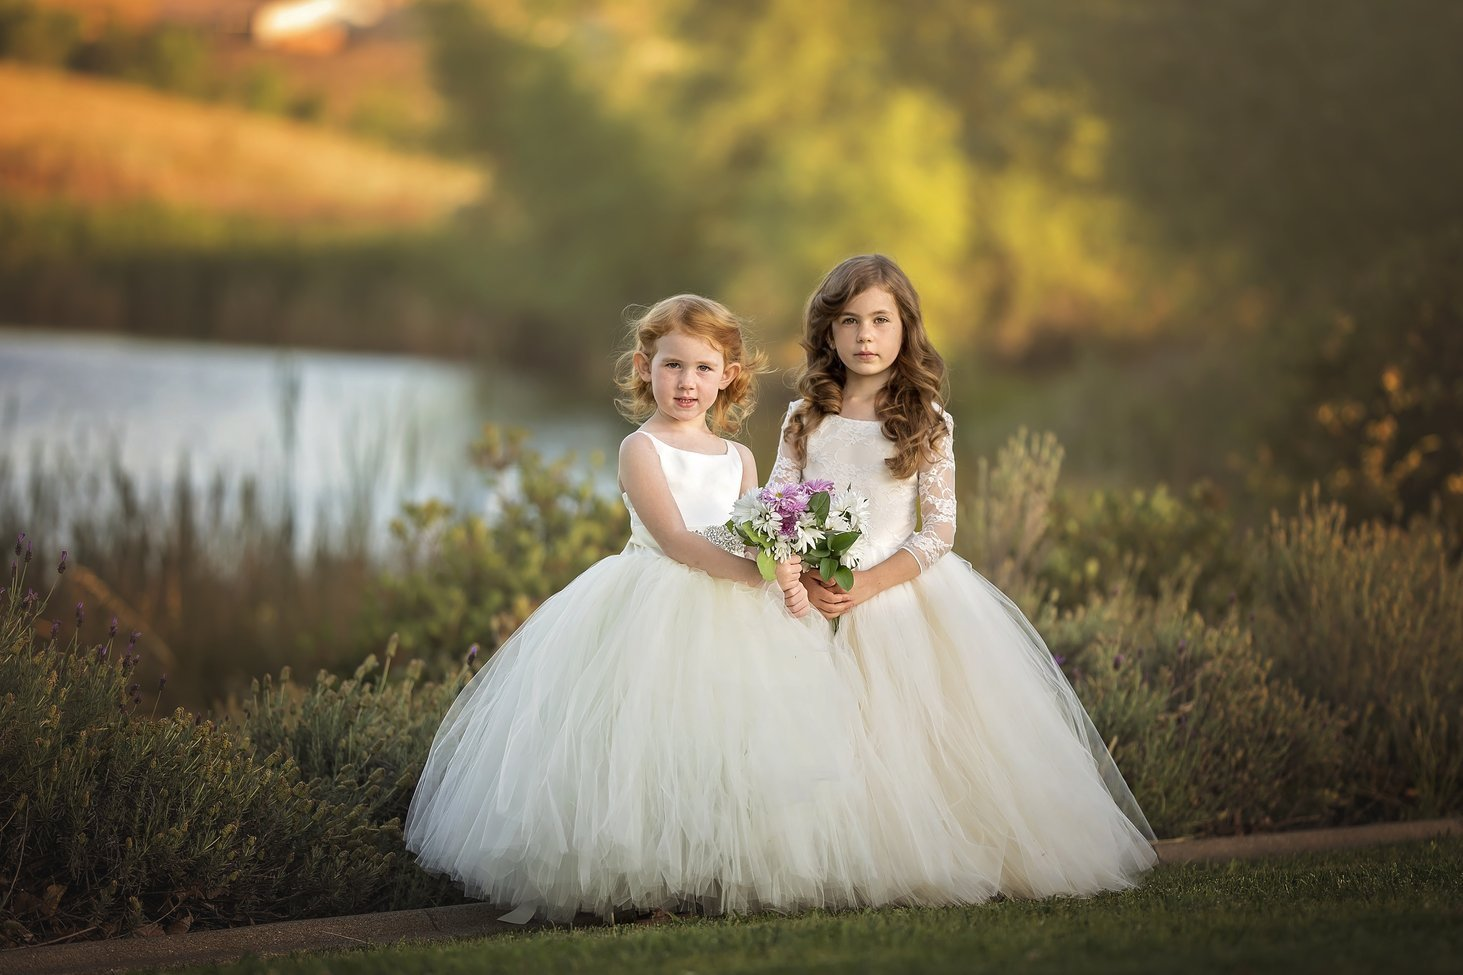 Dress in Lace - Ivory and Champagne - Flower Girl Tutu Dress.jpg